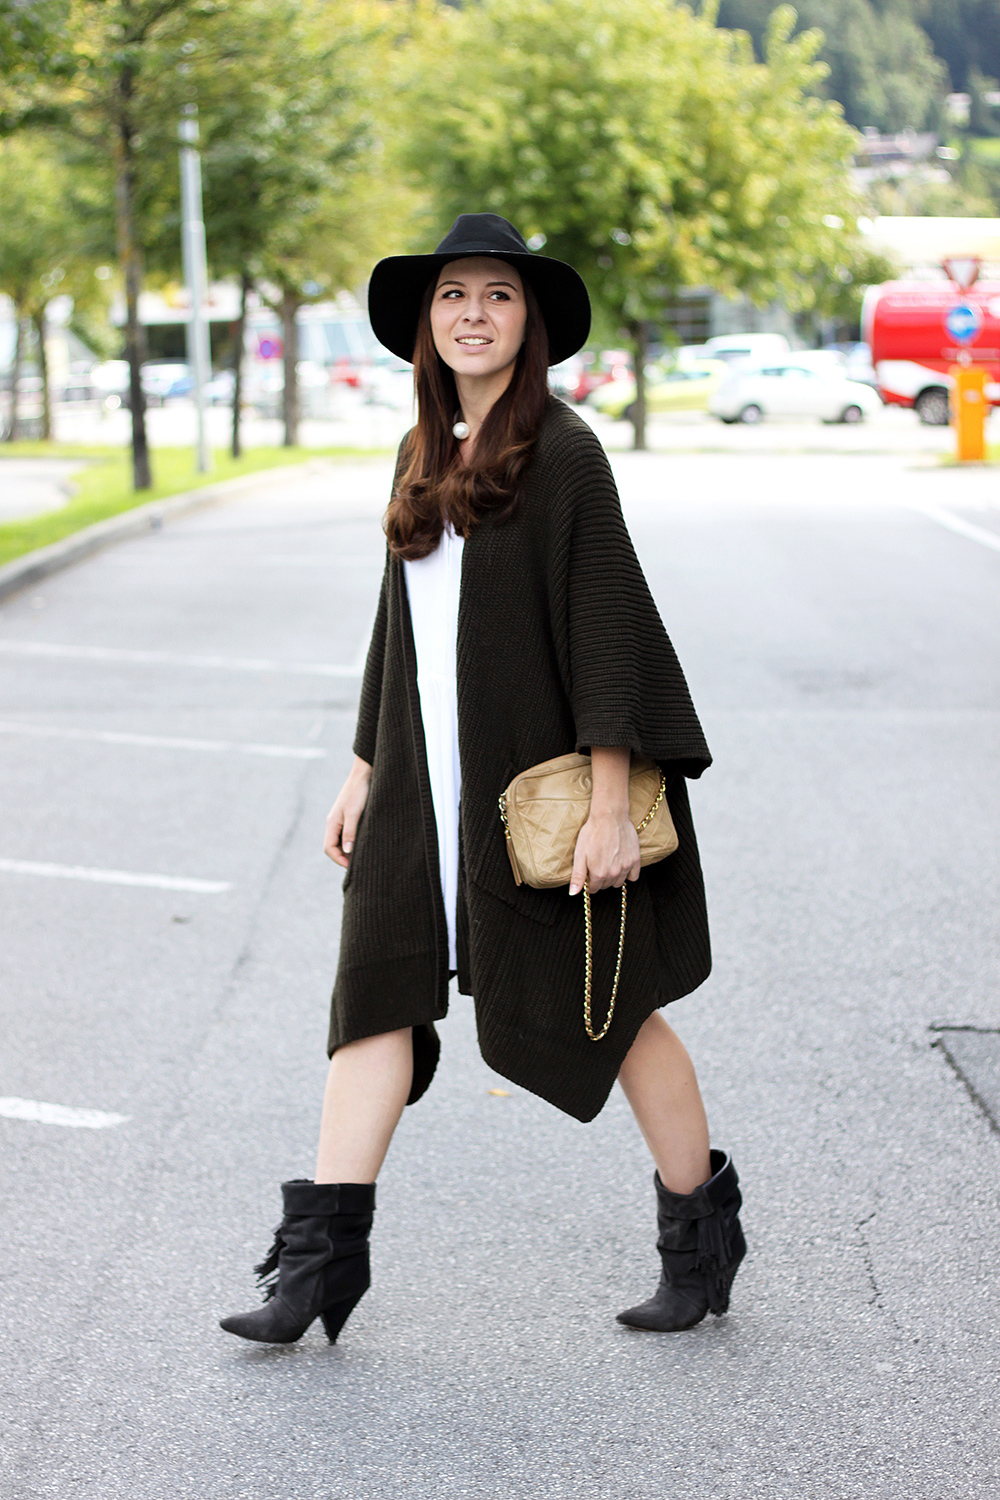 who is mocca, fashionblog tirol, beautyblog, interiorblog, sommerkleid herbst, cape asos strickcape, zara kleid weiss, chanel vintage tasche kaufen, isabel marant pour h&m boots, andrew boots, fedora hut topshop